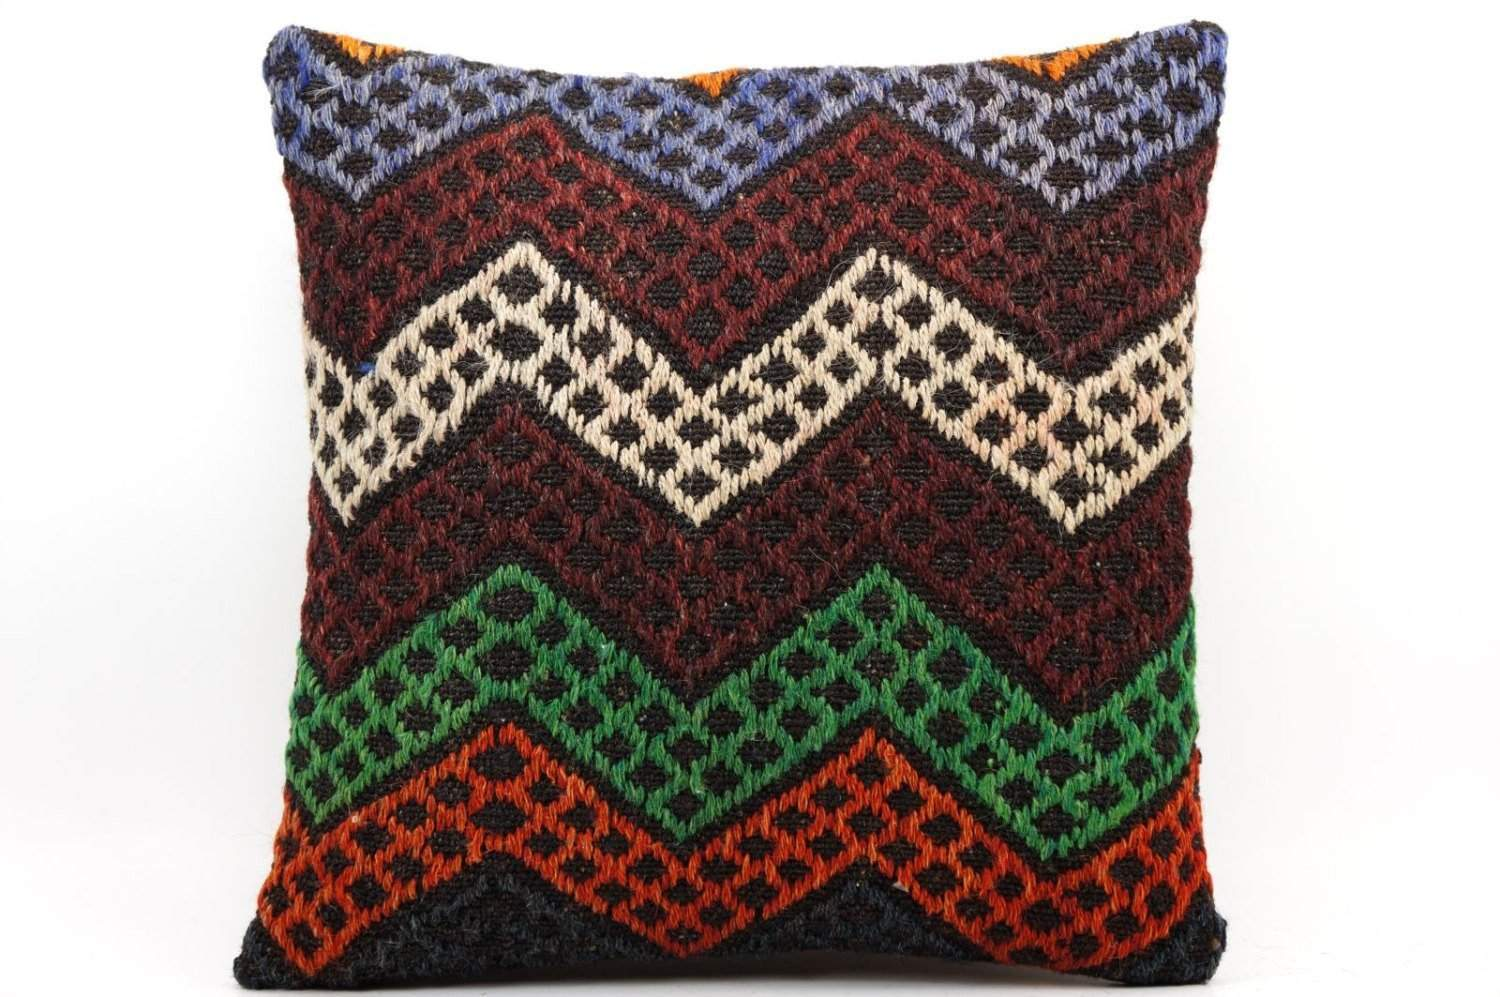 16x16 Vintage Hand Woven Kilim Pillow 500,white,green,blue,black,red,claret red,chevron